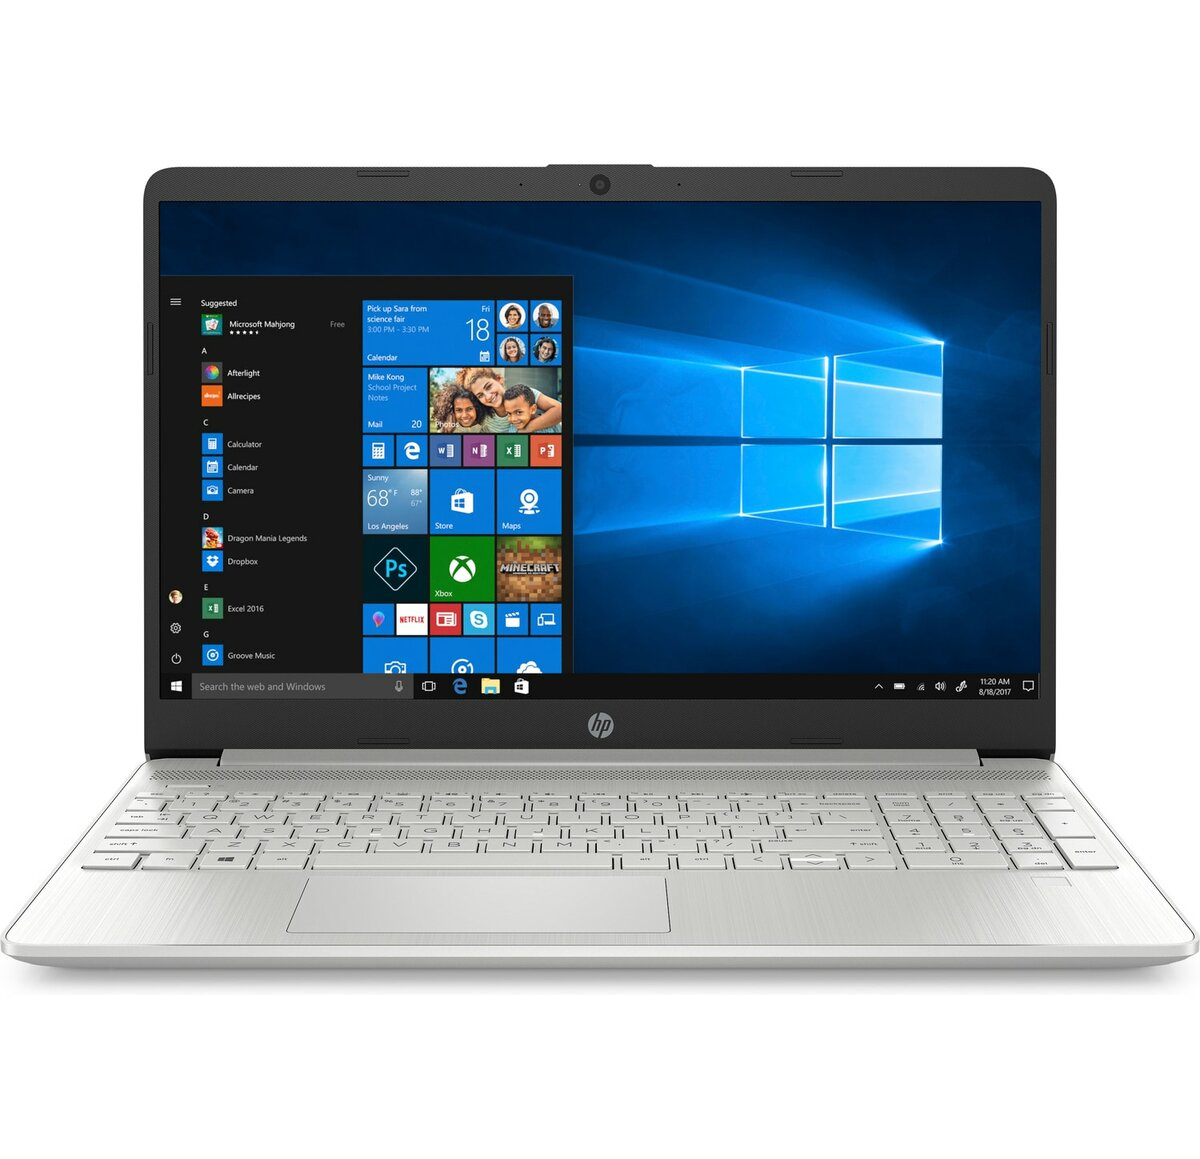 "HP 15-dy1027od 15.6"" HD Laptop (Quad i7-1065G7 / 8GB / 256GB SSD)"